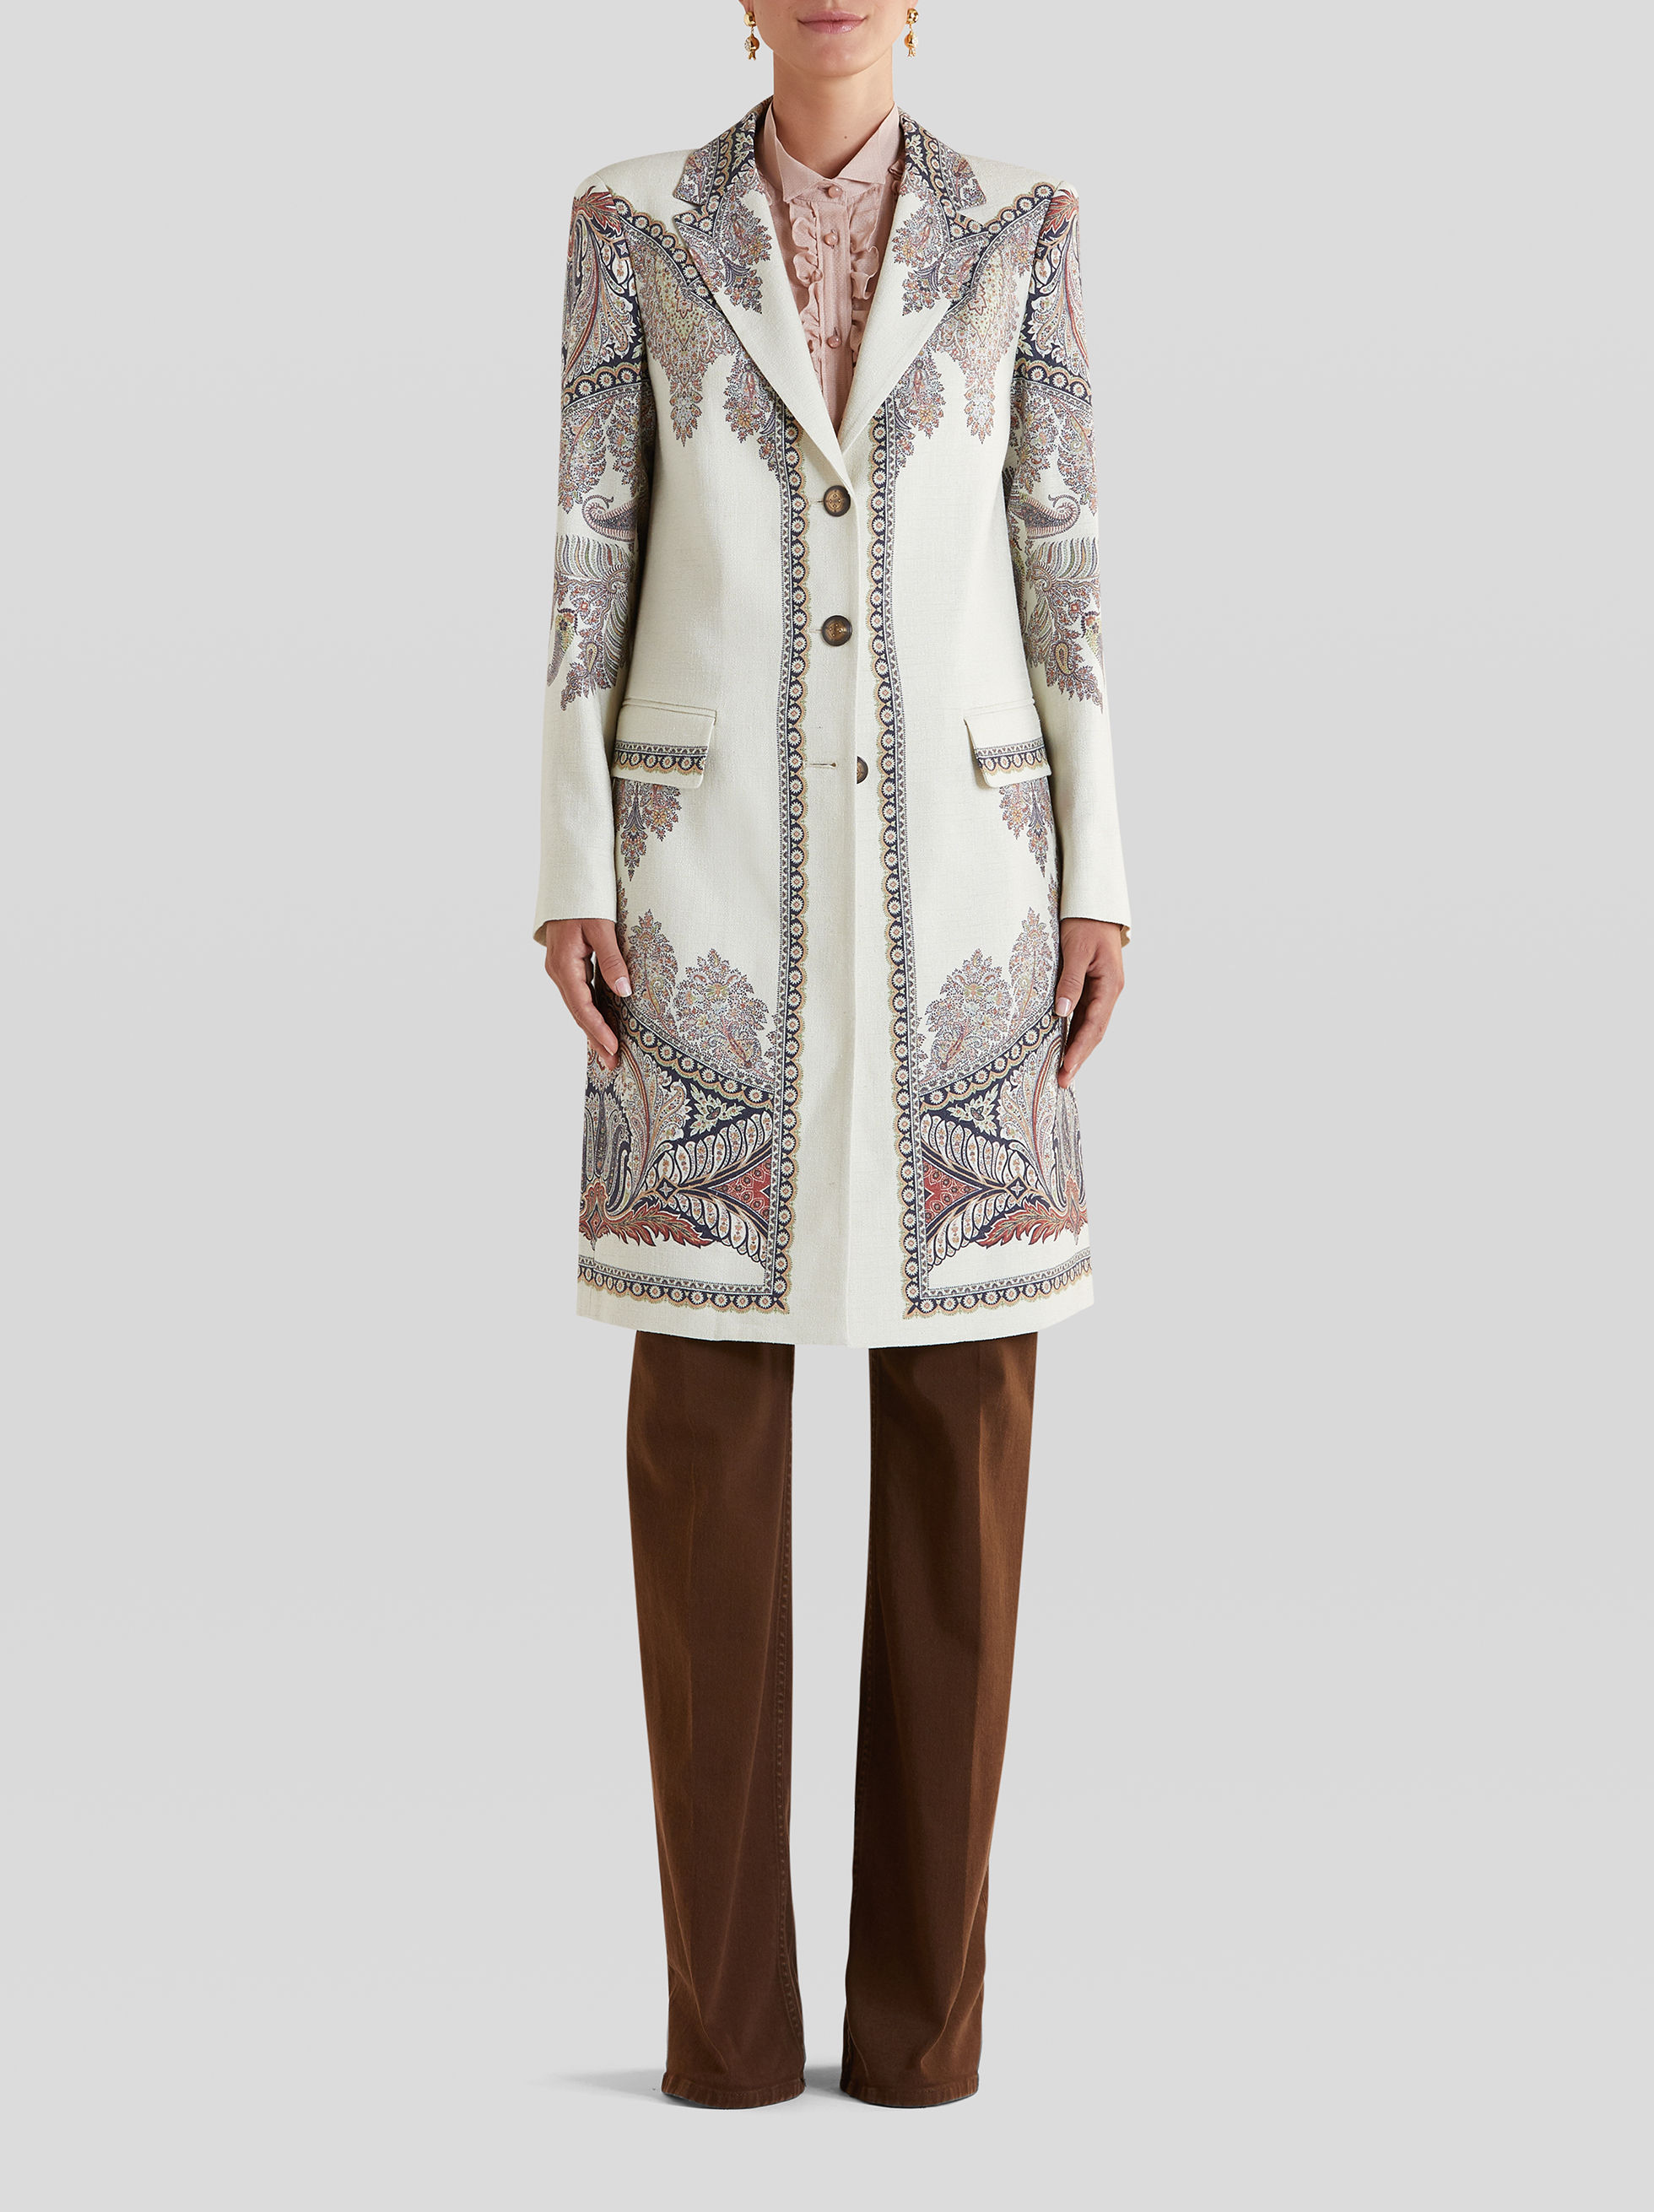 LIGHT FLORAL PAISLEY PRINT COAT